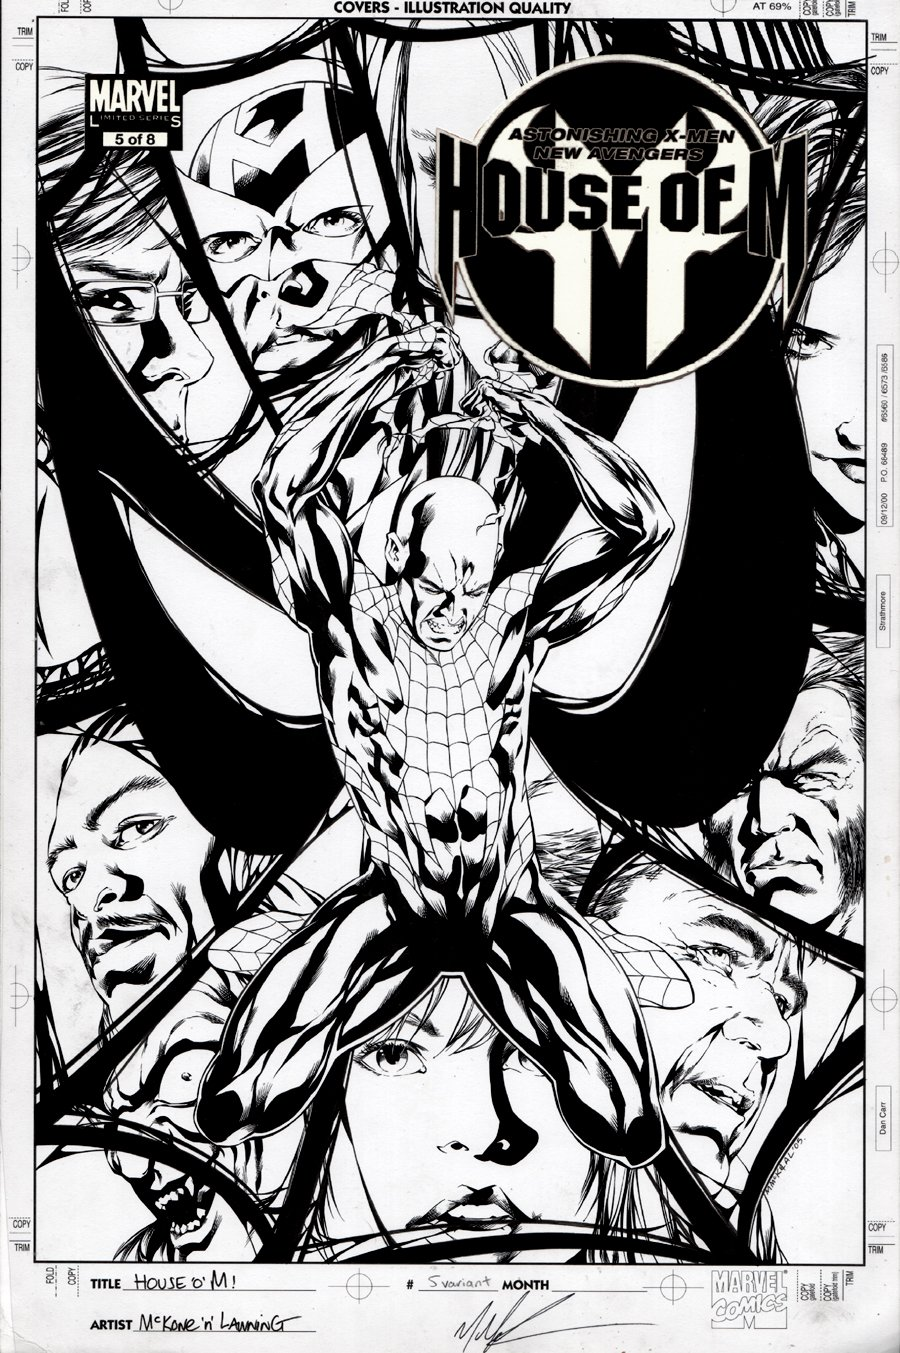 House of M #5 Cover (11 Characters Drawn!) 2005